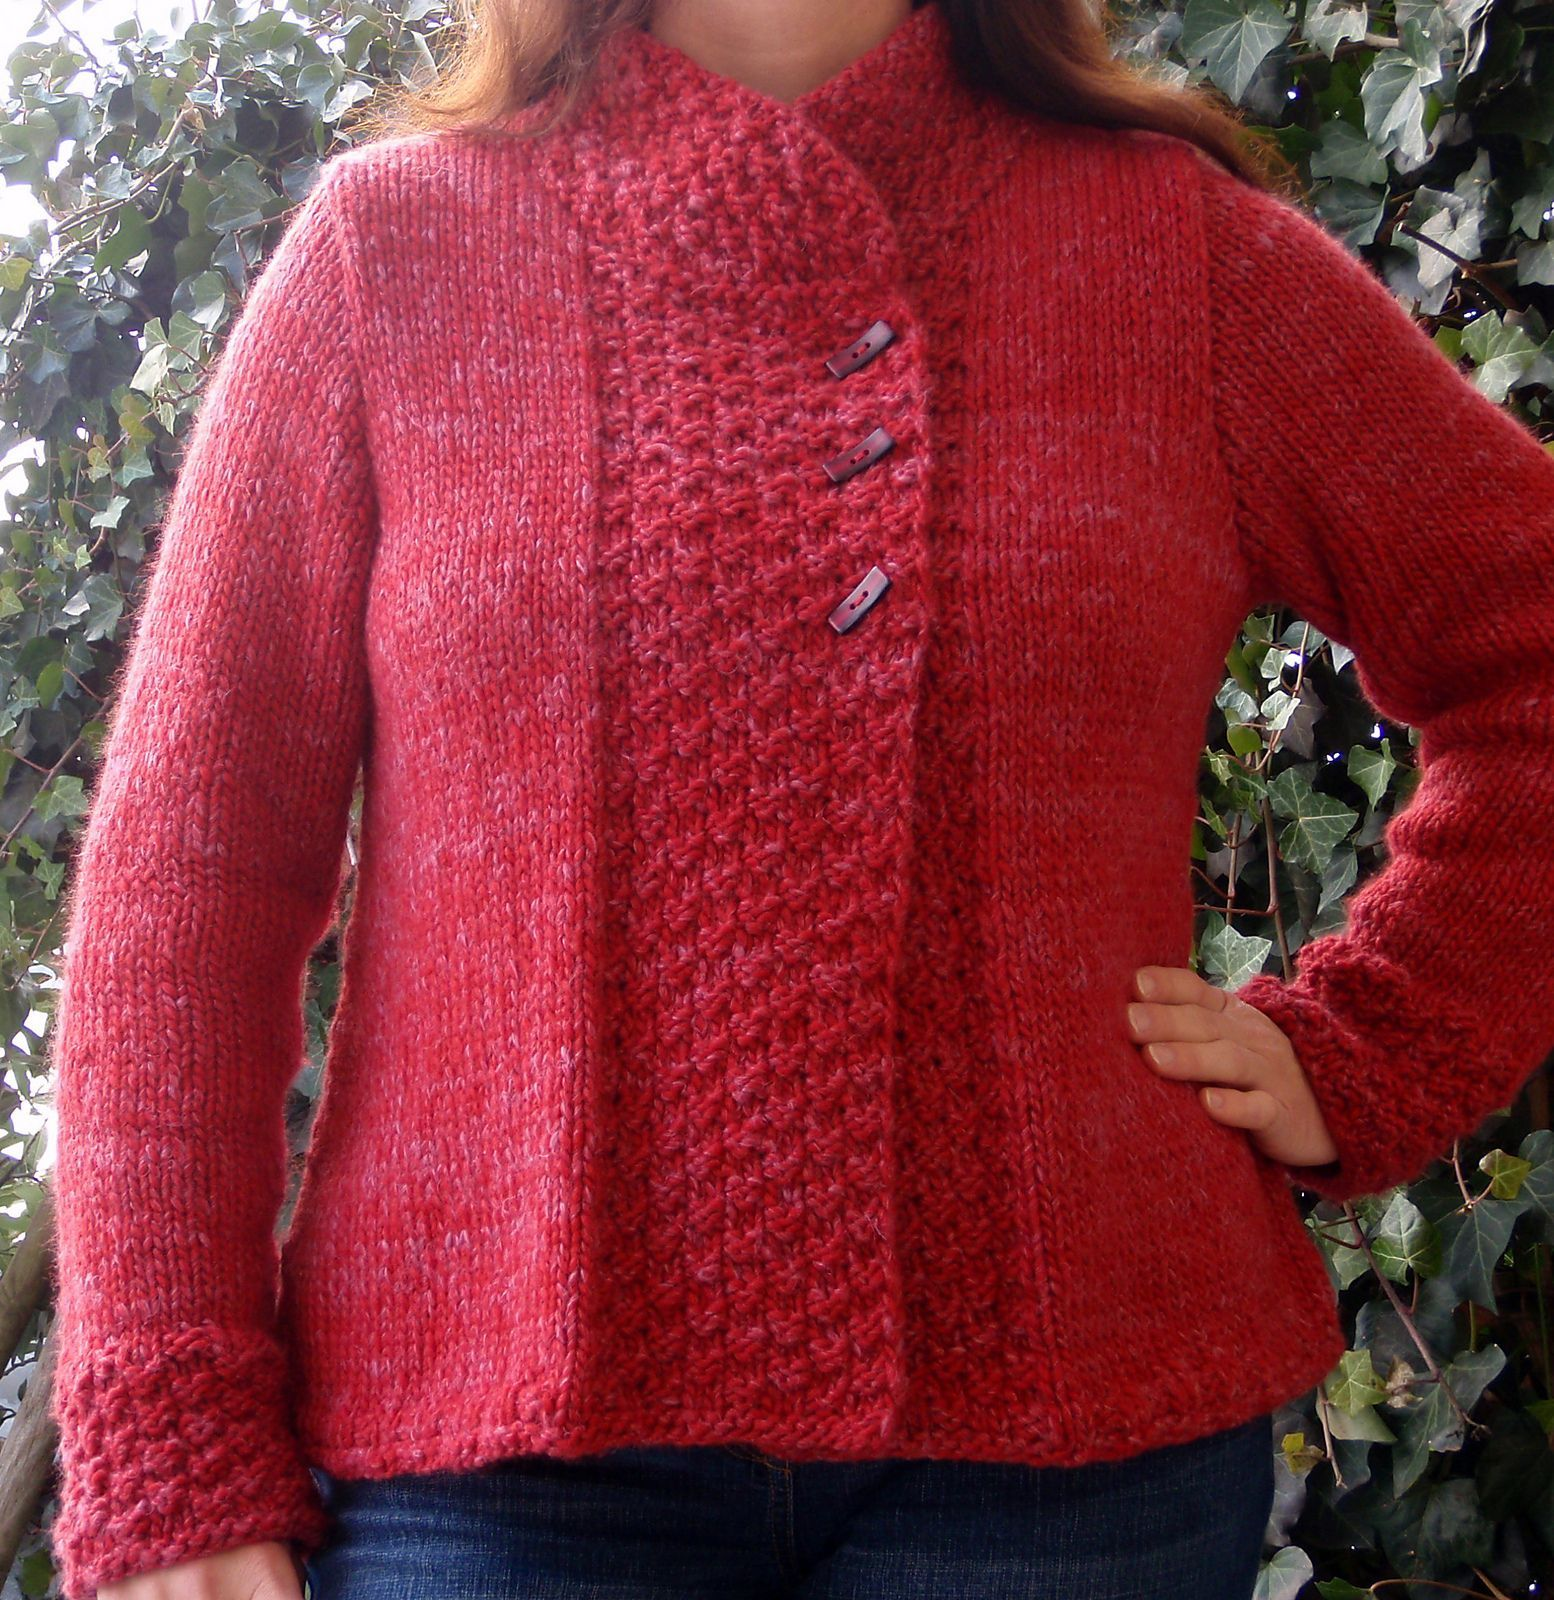 Free Knitting Pattern for Quick Silver Haze Jacket - This cardigan ...